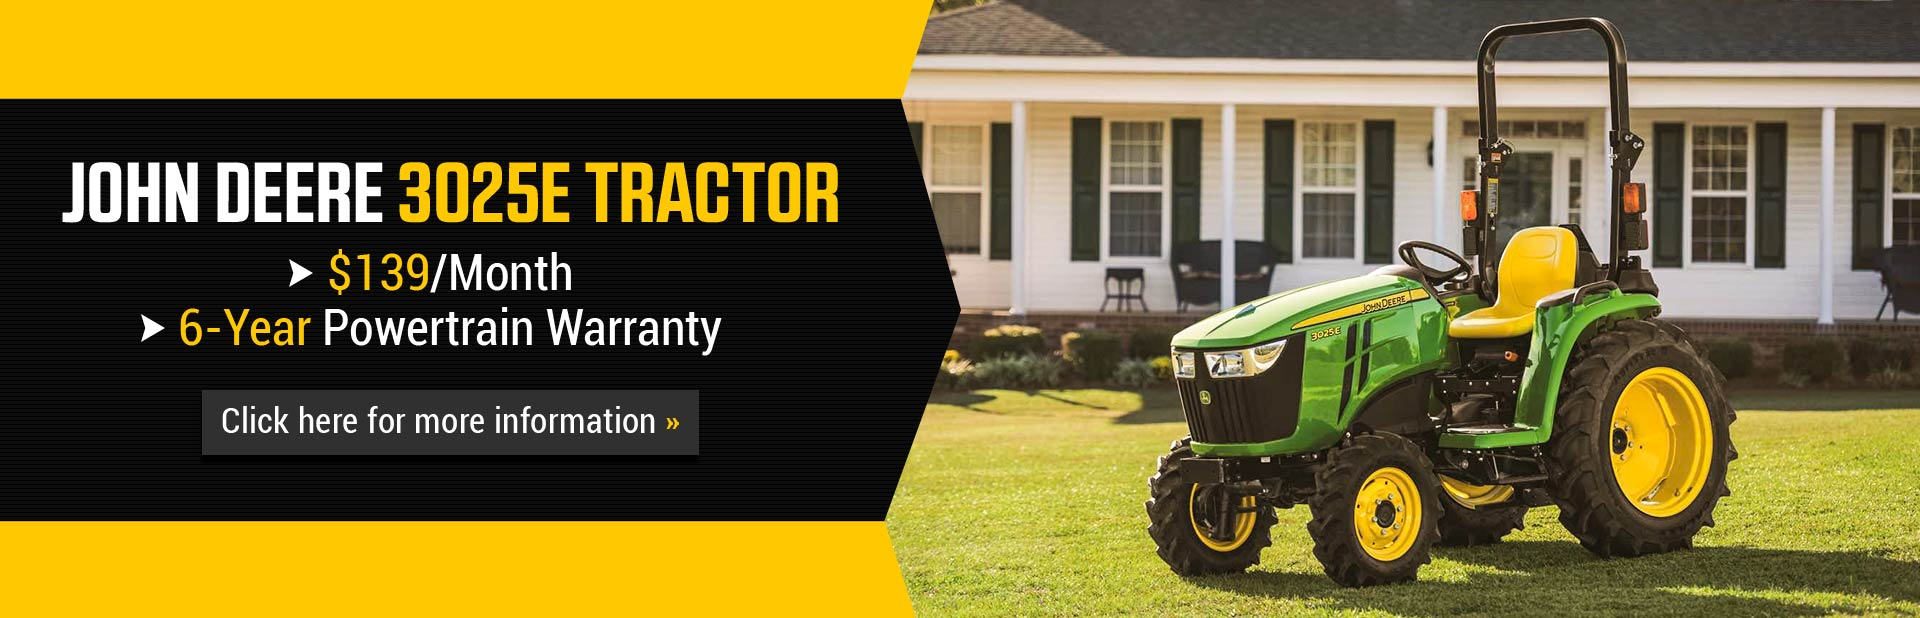 John Deere 3025E Tractor: Click here for more information.